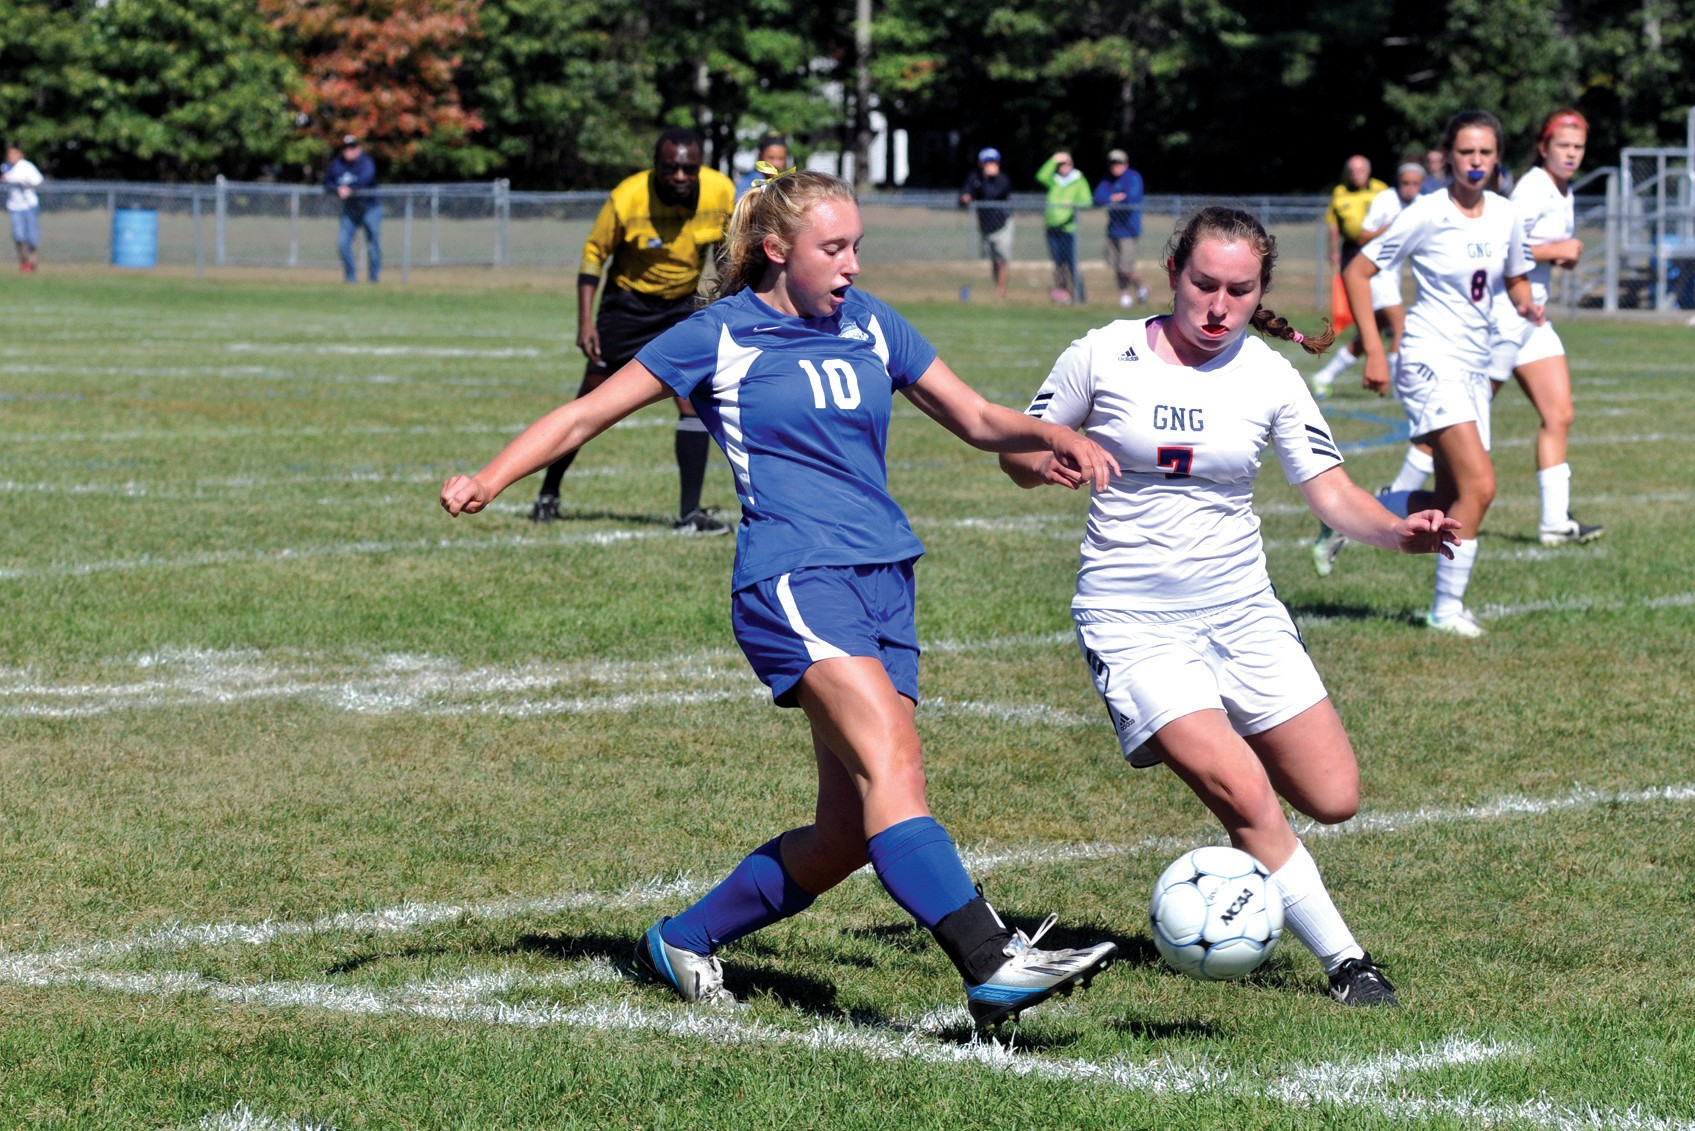 Kennebunk's Sierra Tarte (10) gets rid of the ball ahead of Gray-New Gloucester's Emma Dyer during a 0-0 tie at Myles Burbank Memorial Field in Gray last Saturday.